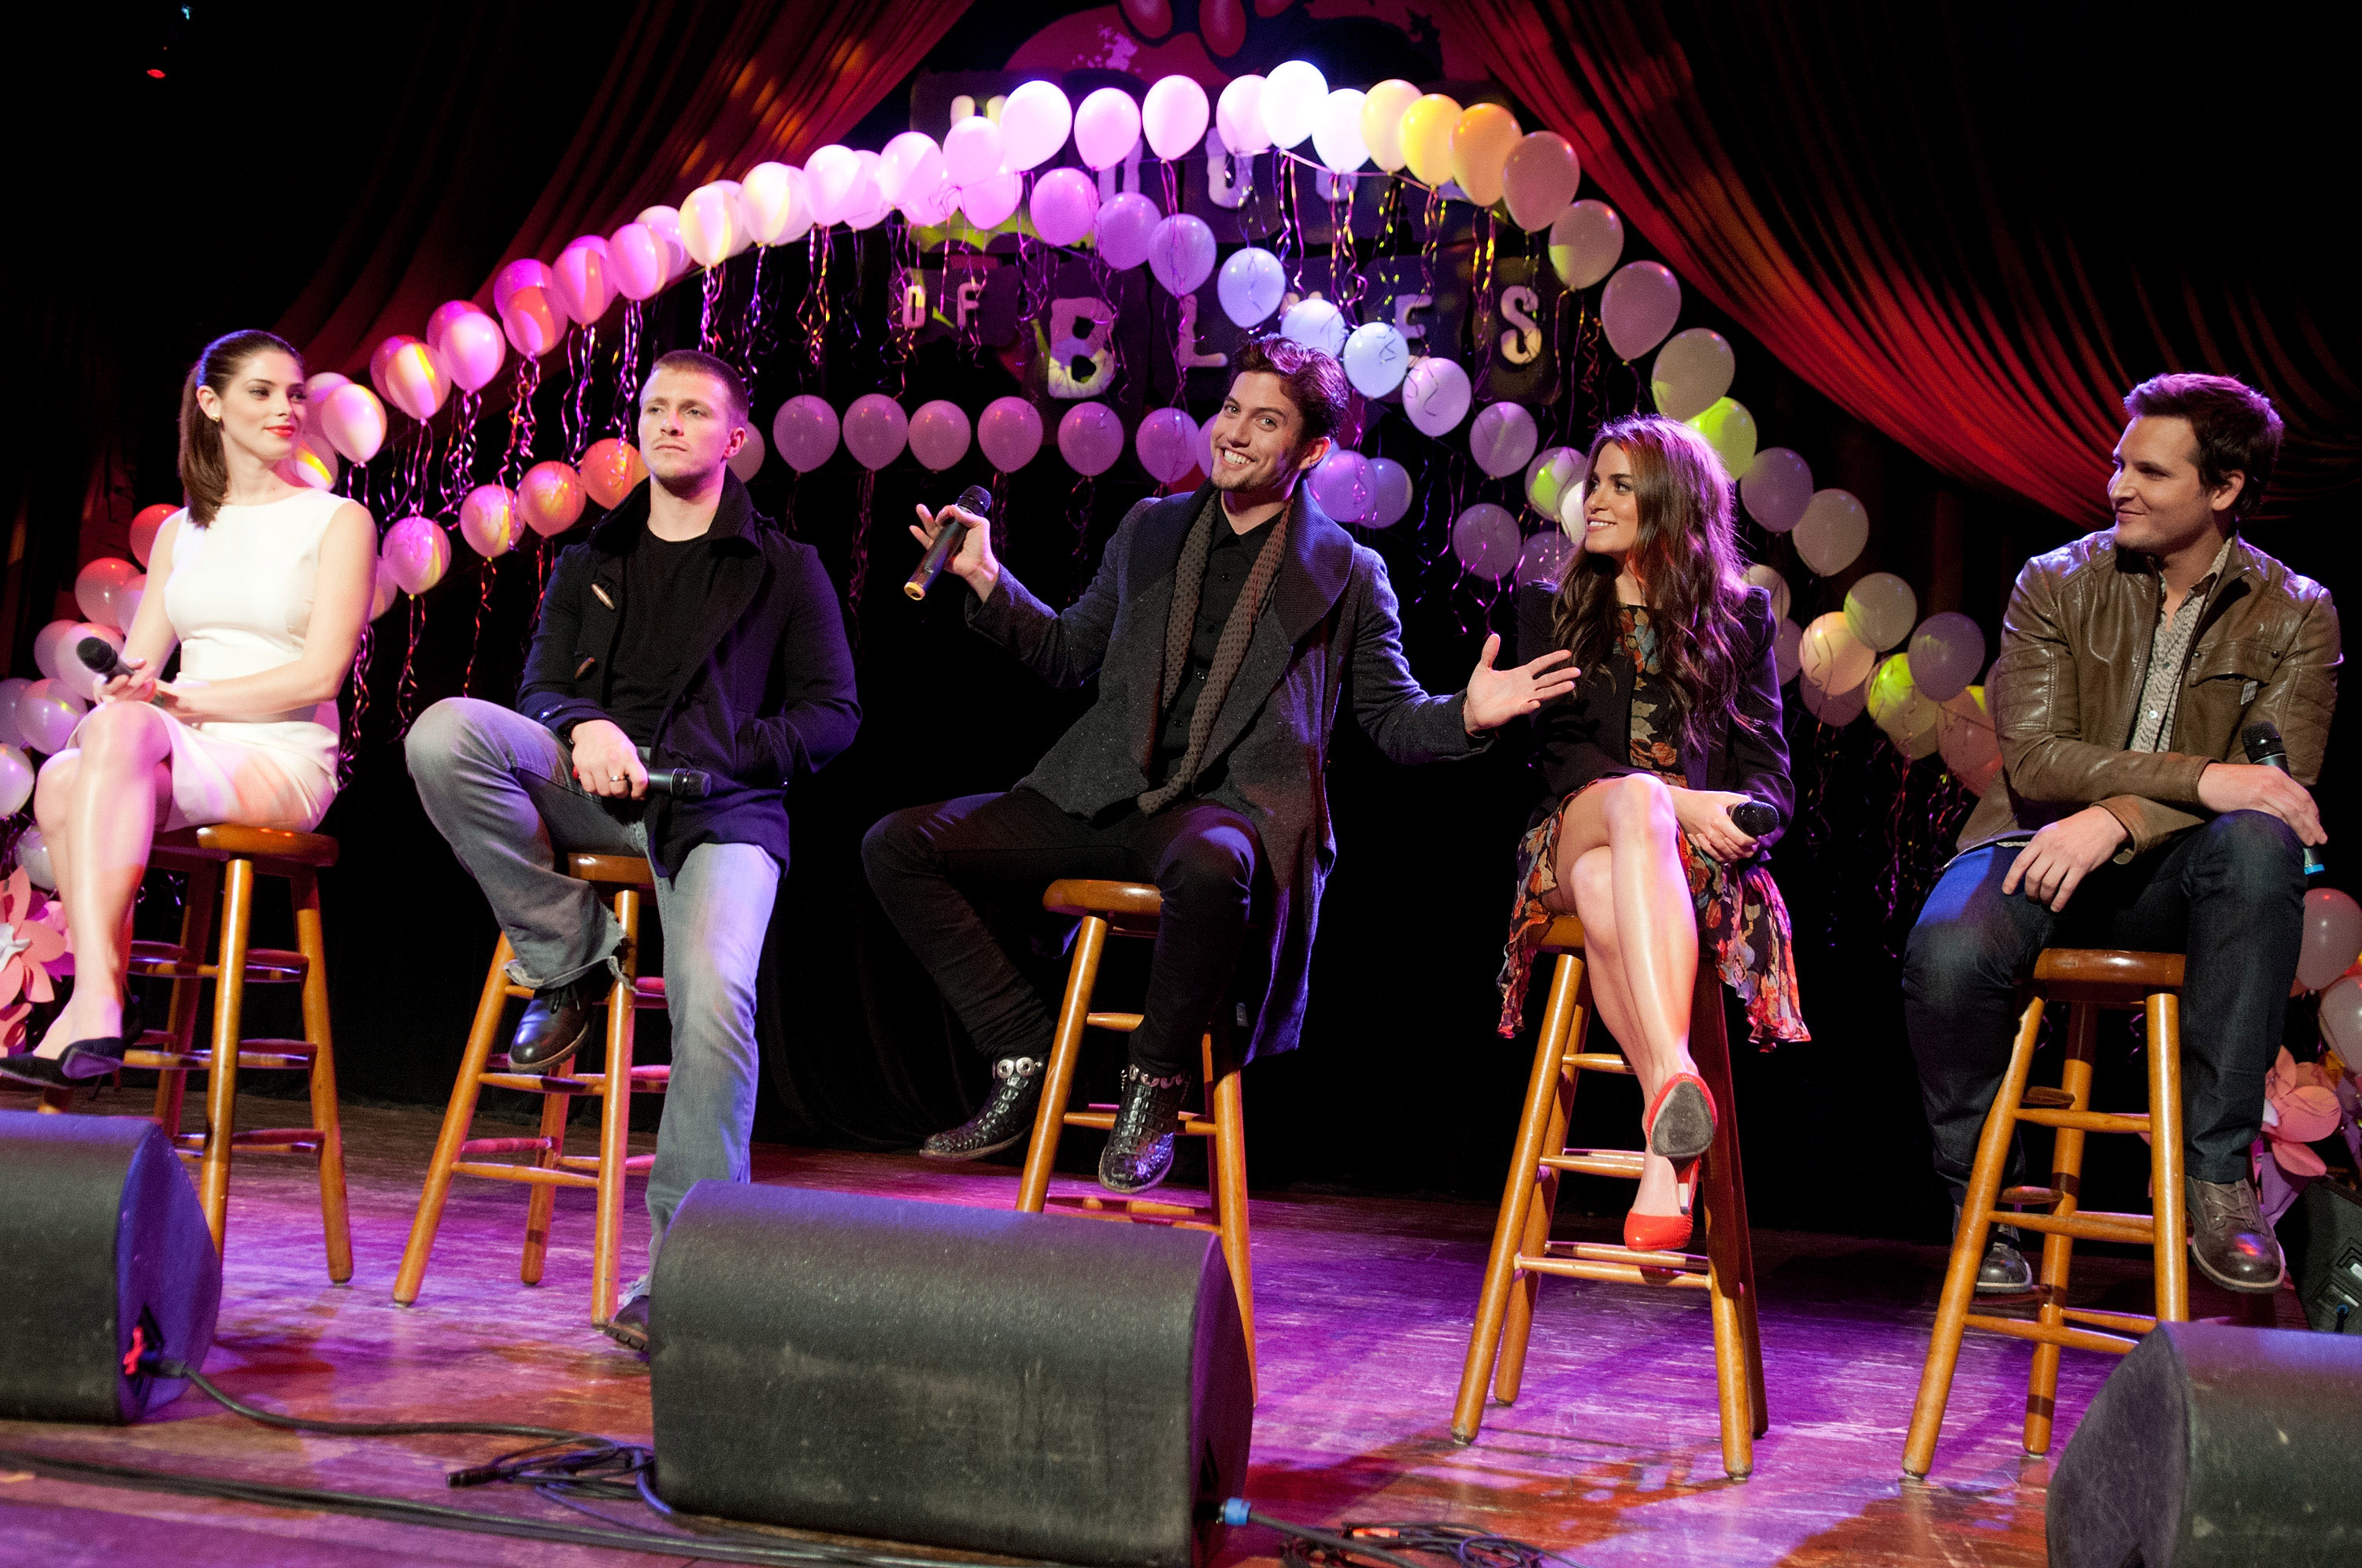 Charlie Bewley took the stage with Twilight's Ashley Greene, Jackson Rathbone, Nikki Reed, and Peter Facinelli.